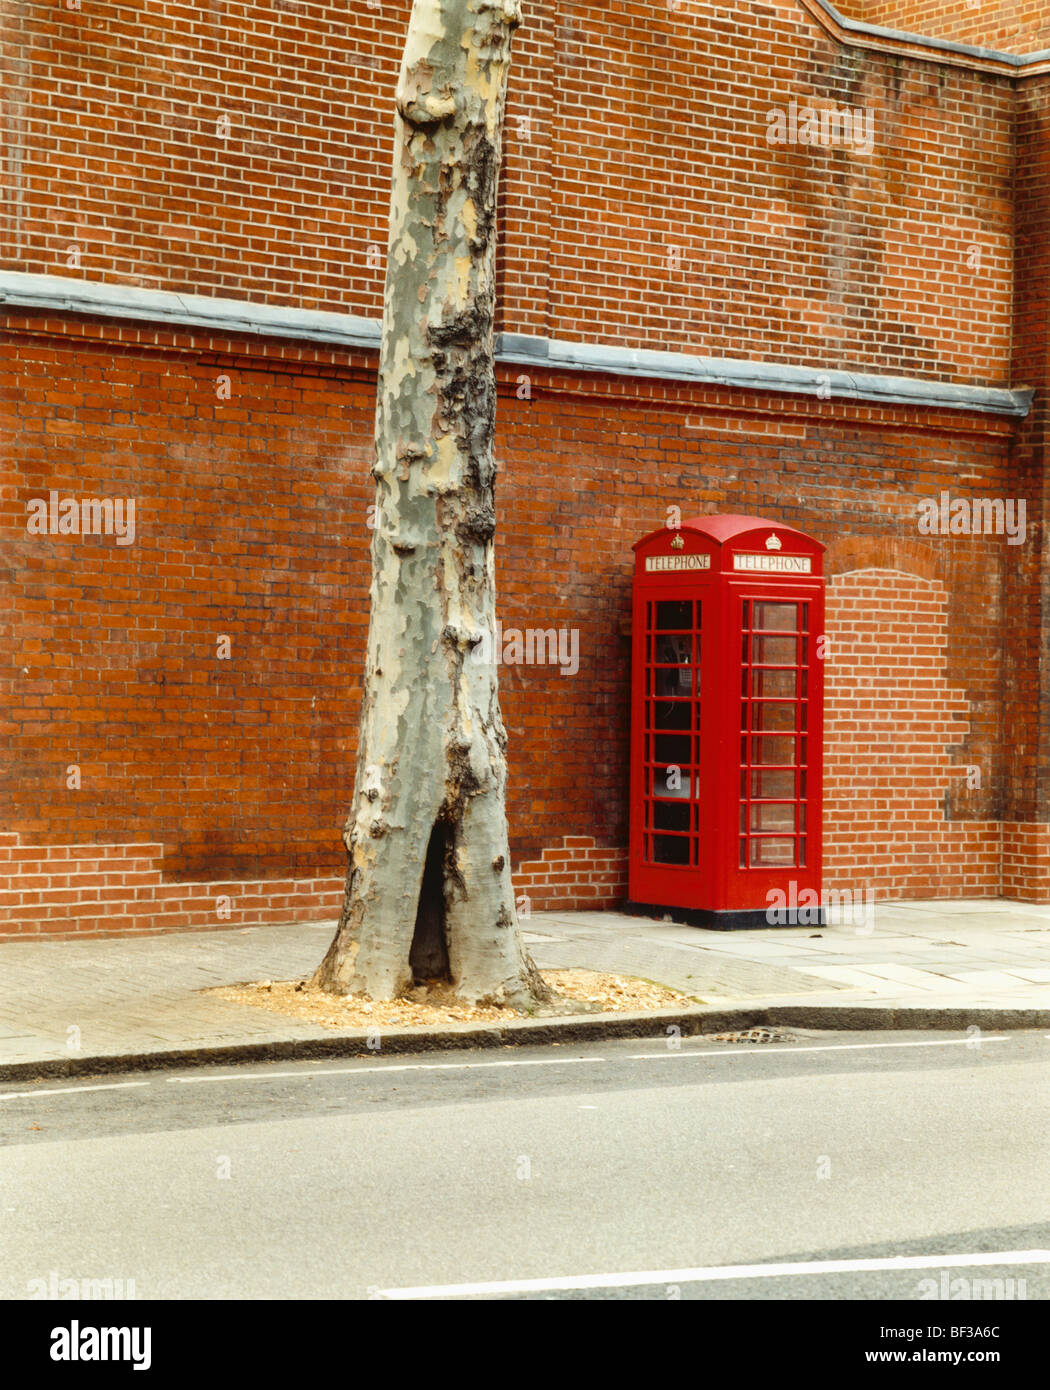 Traditional red phone box in street - Stock Image